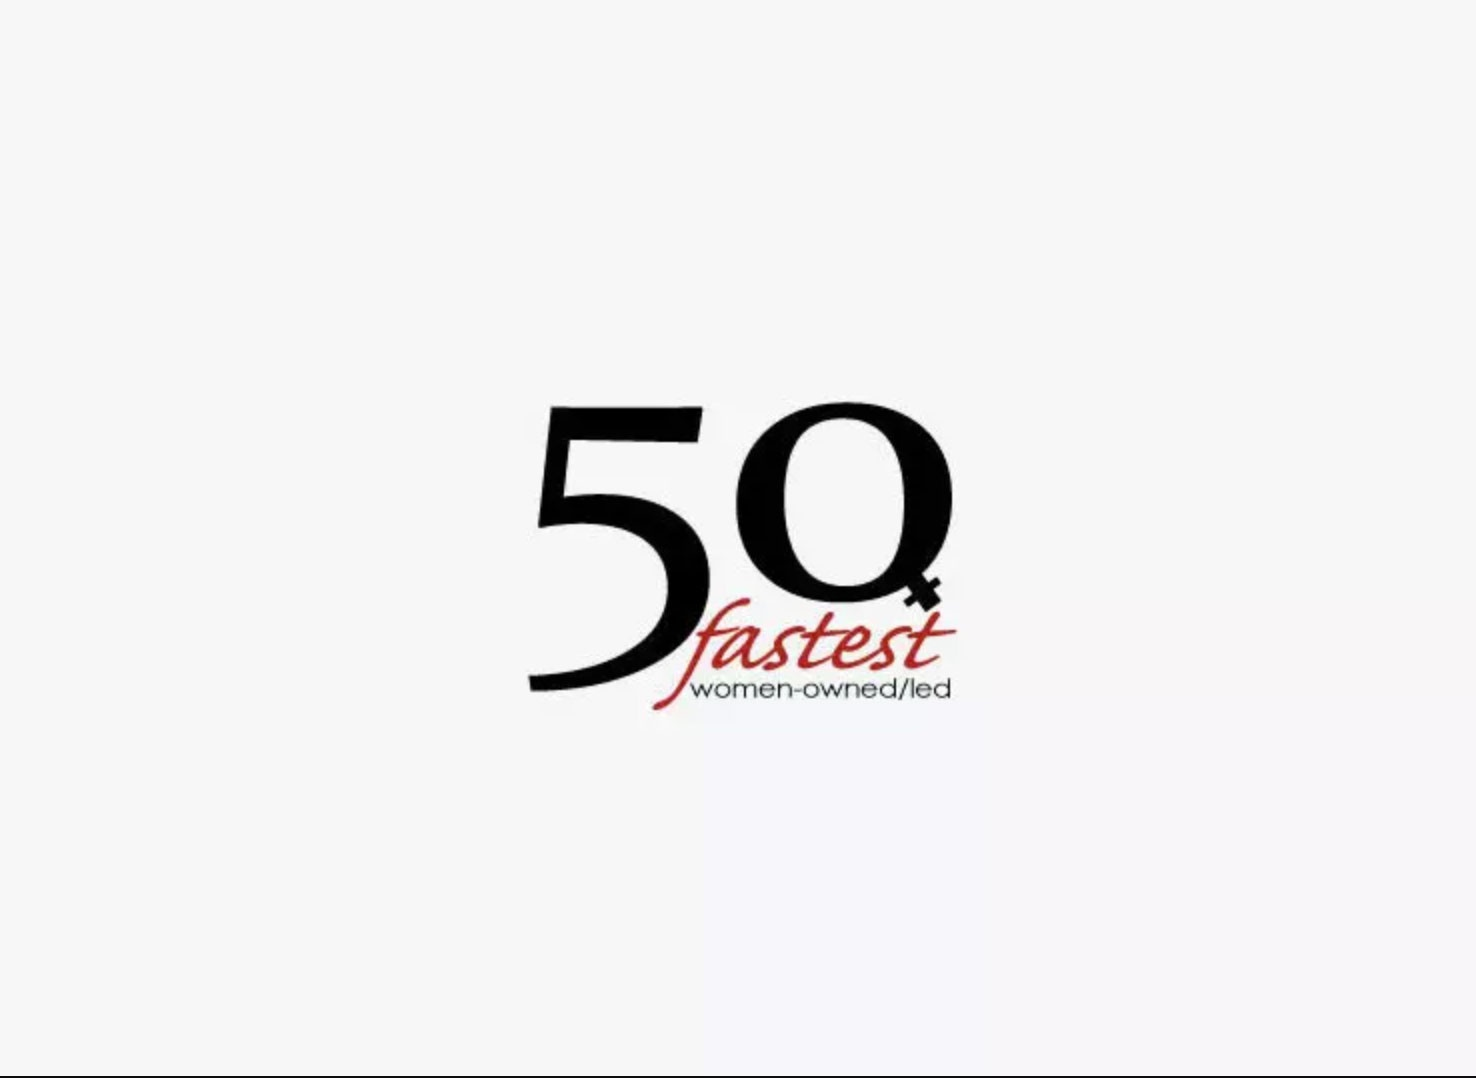 50-fastest-growing-women-owned businesses badge